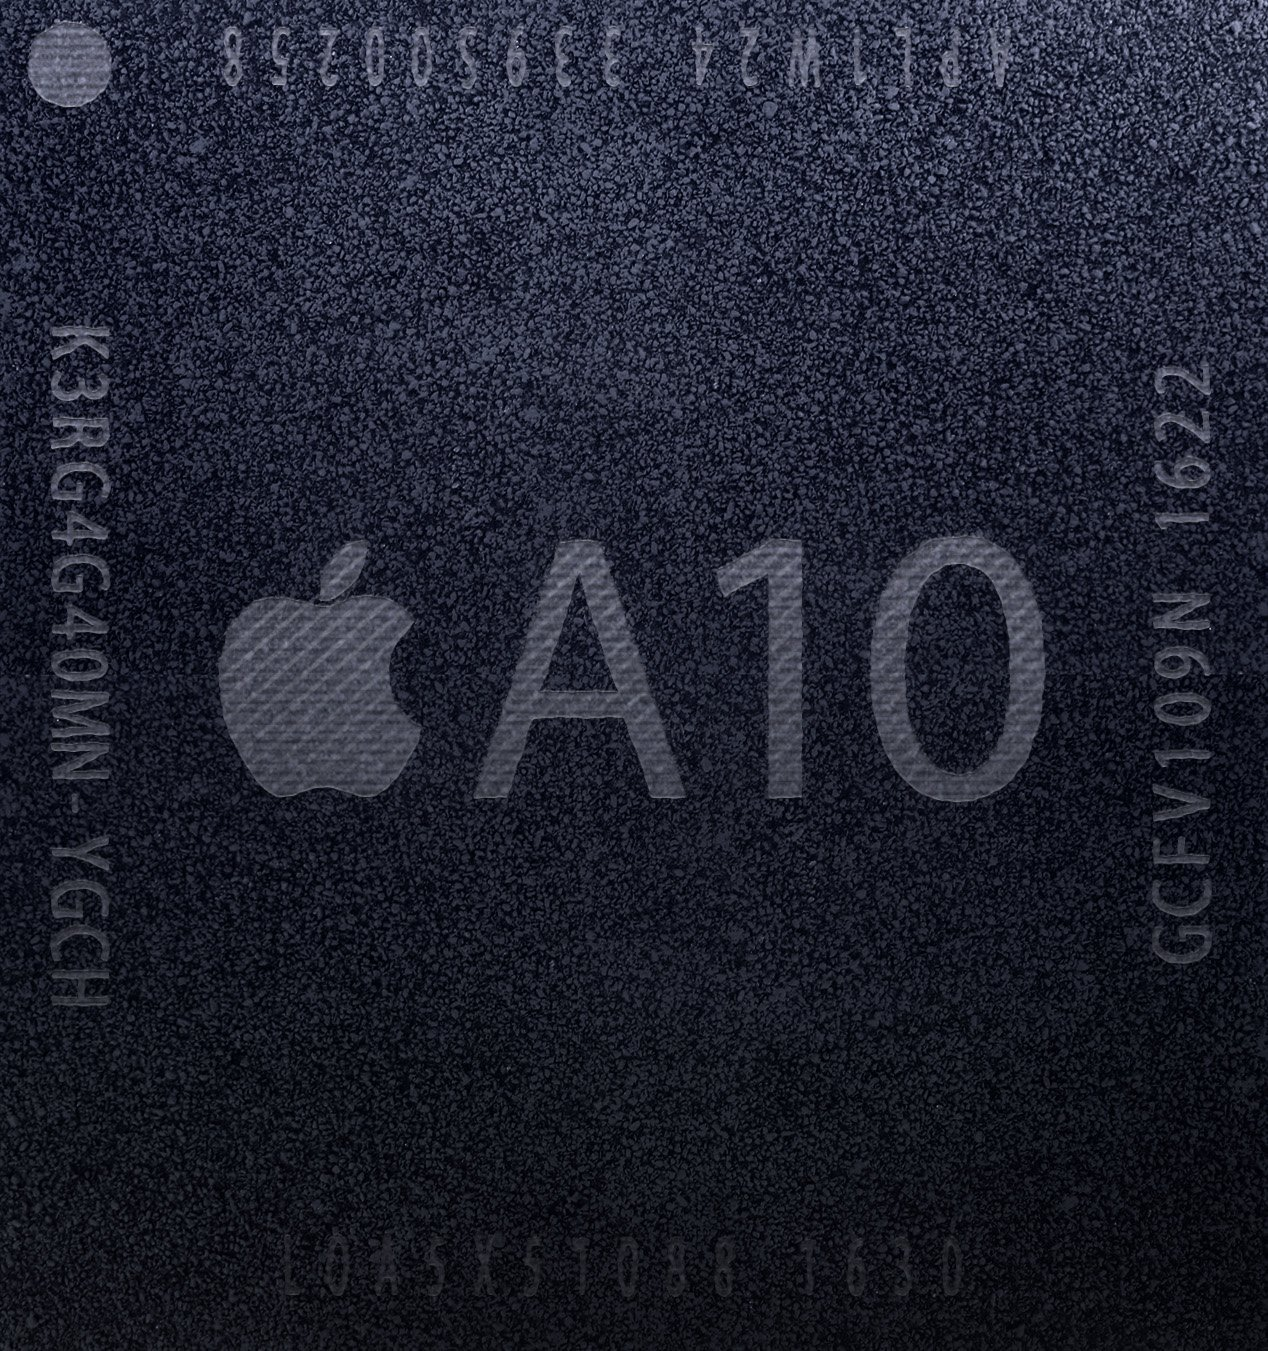 Apple A10 Fusion - By Henriok (Own work) [CC0], via Wikimedia Commons